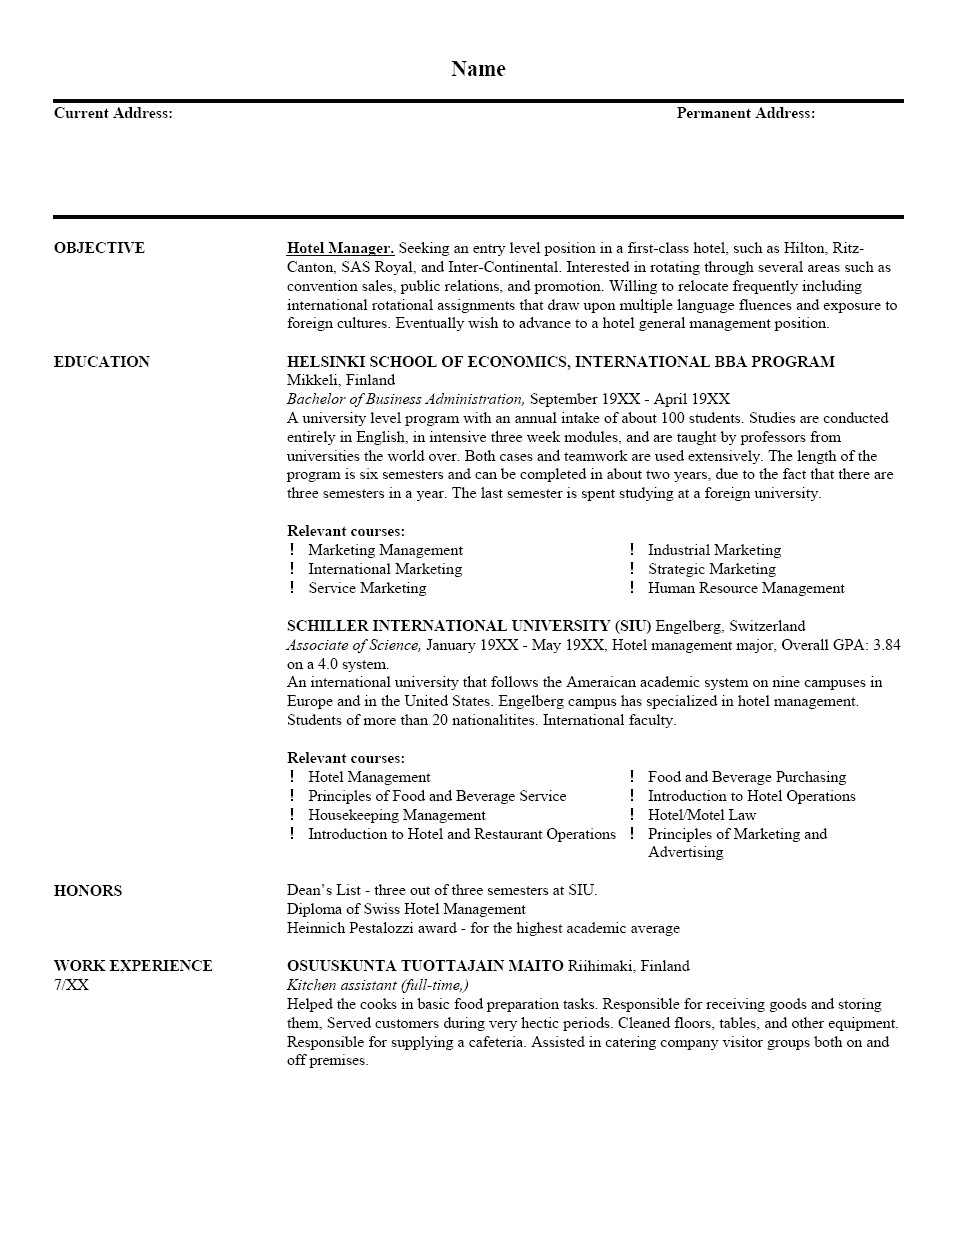 Free Resume Template or Tips Free Sample Resume Health Symptoms and Cure Com